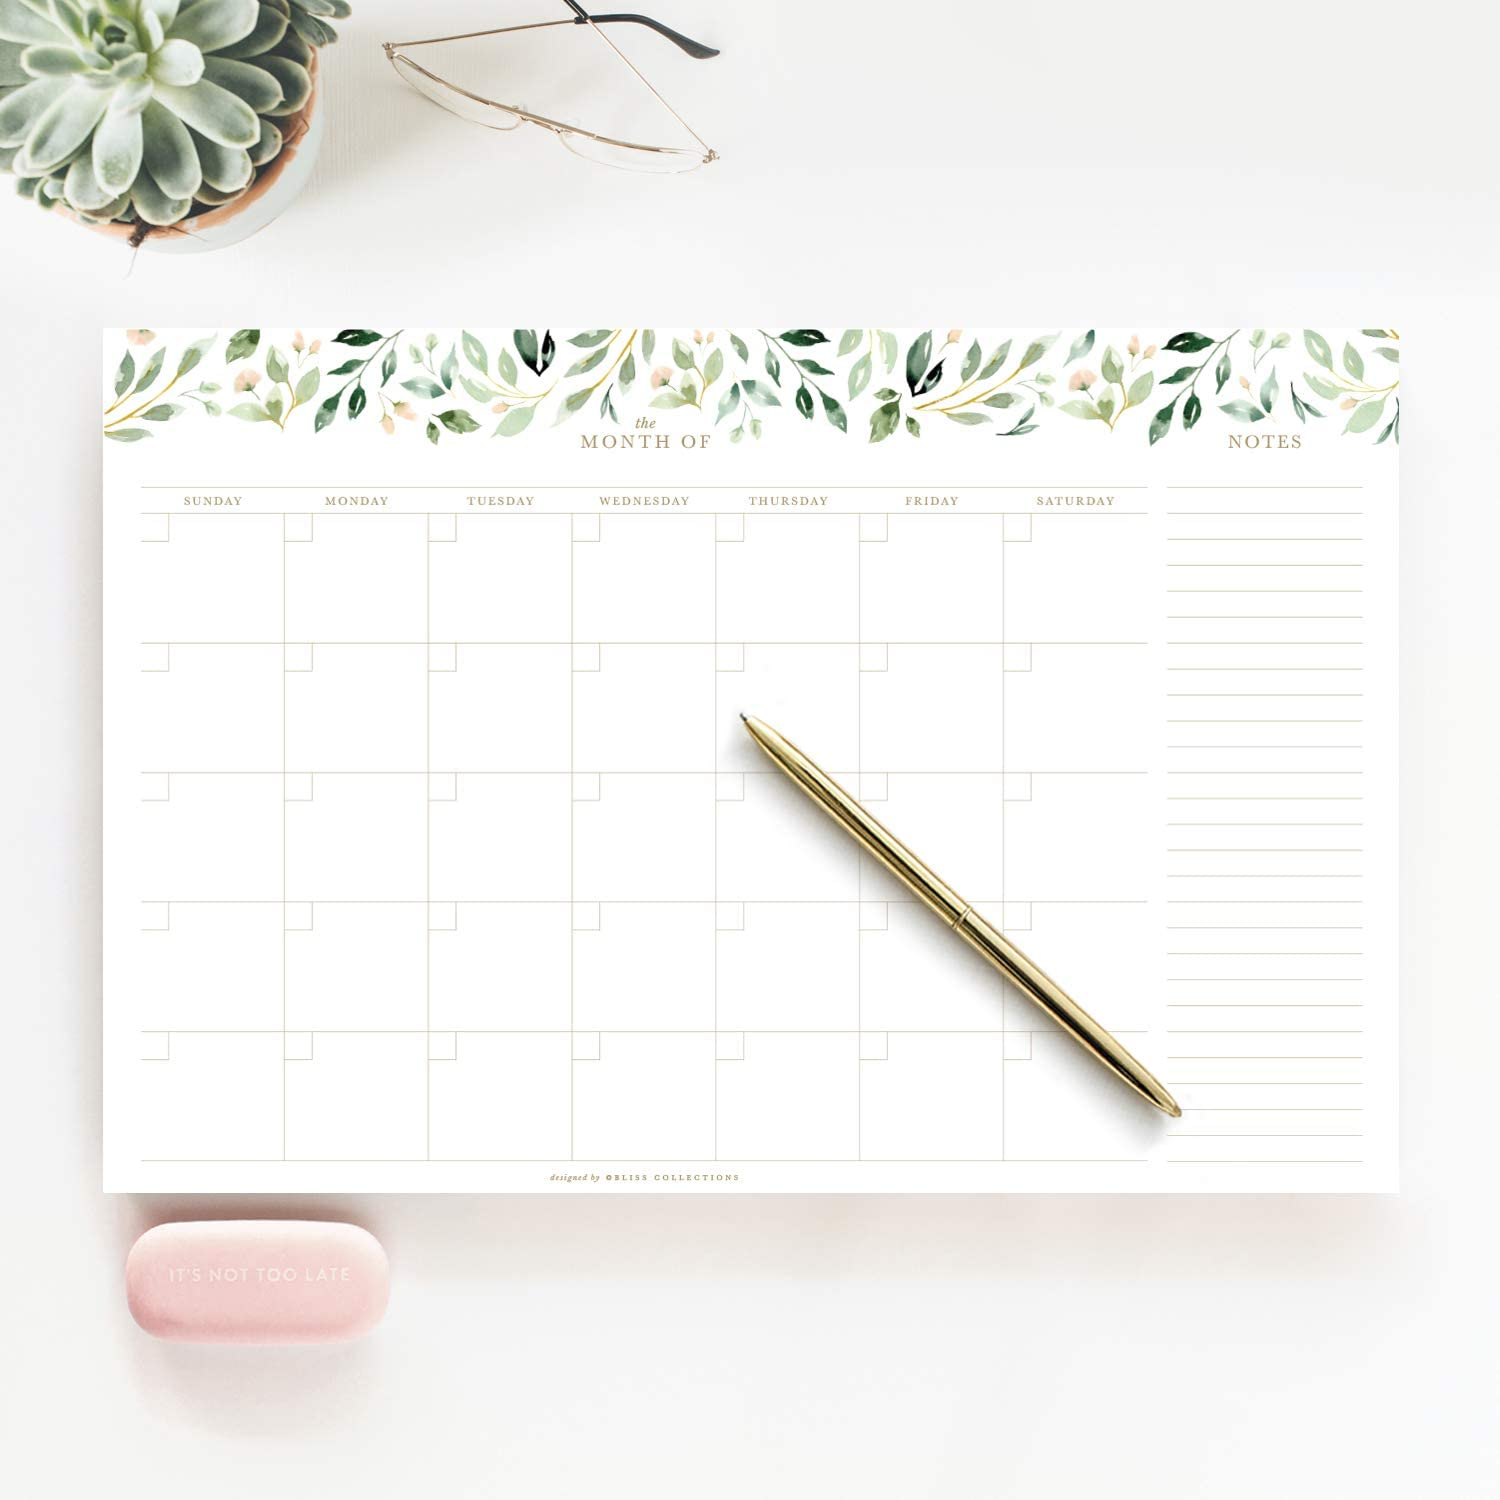 Bliss Collections Monthly Planner with 18 Undated 12 x 18 Tear-Off Sheets - Greenery Planner, Organizer, Scheduler, Productivity Tracker for Organizing Tasks, Ideas, Notes and More!